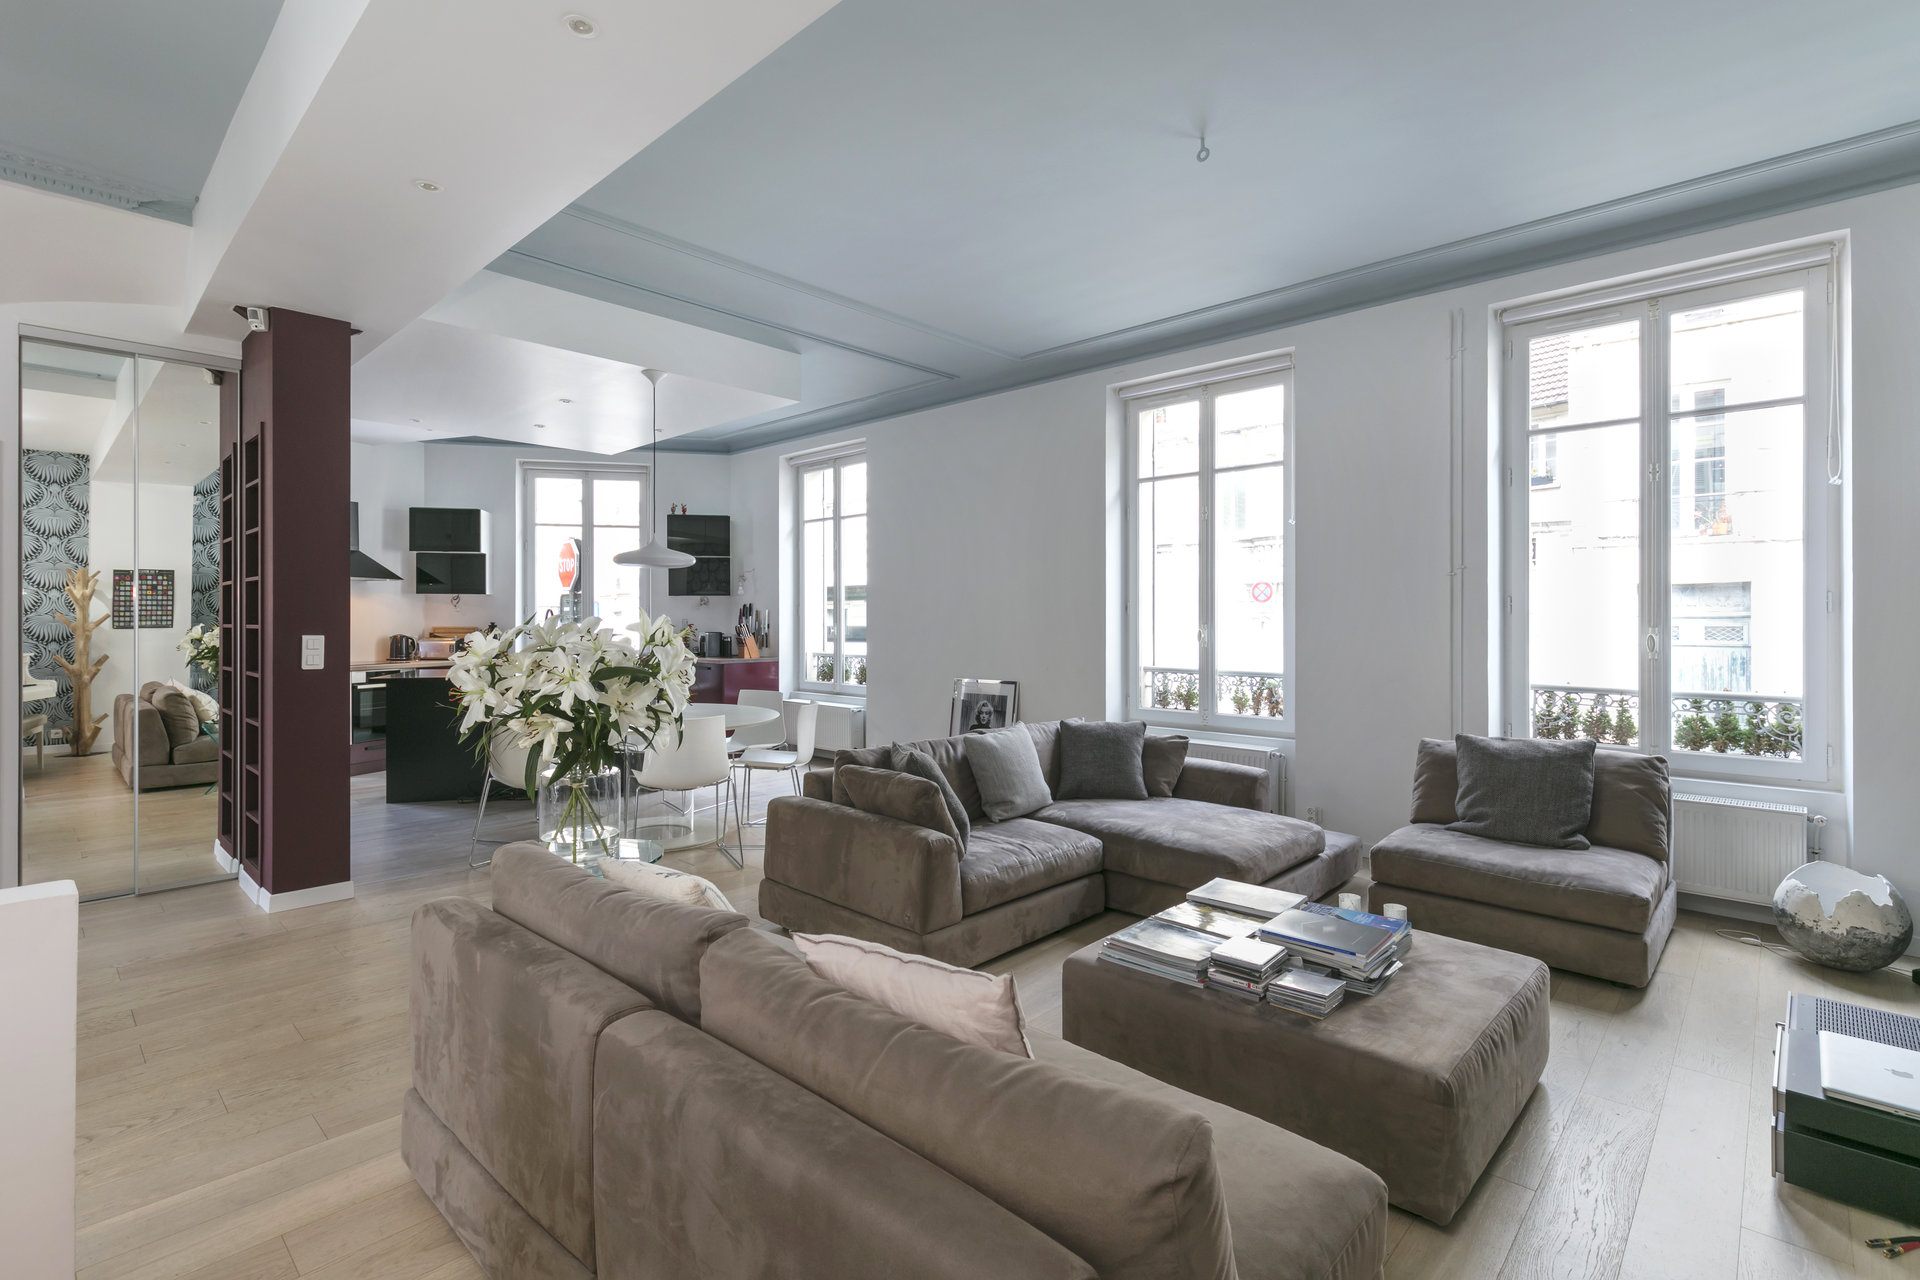 renovated-old-house-for-sale-saint-germain-en-laye-independent-studio-small-garden